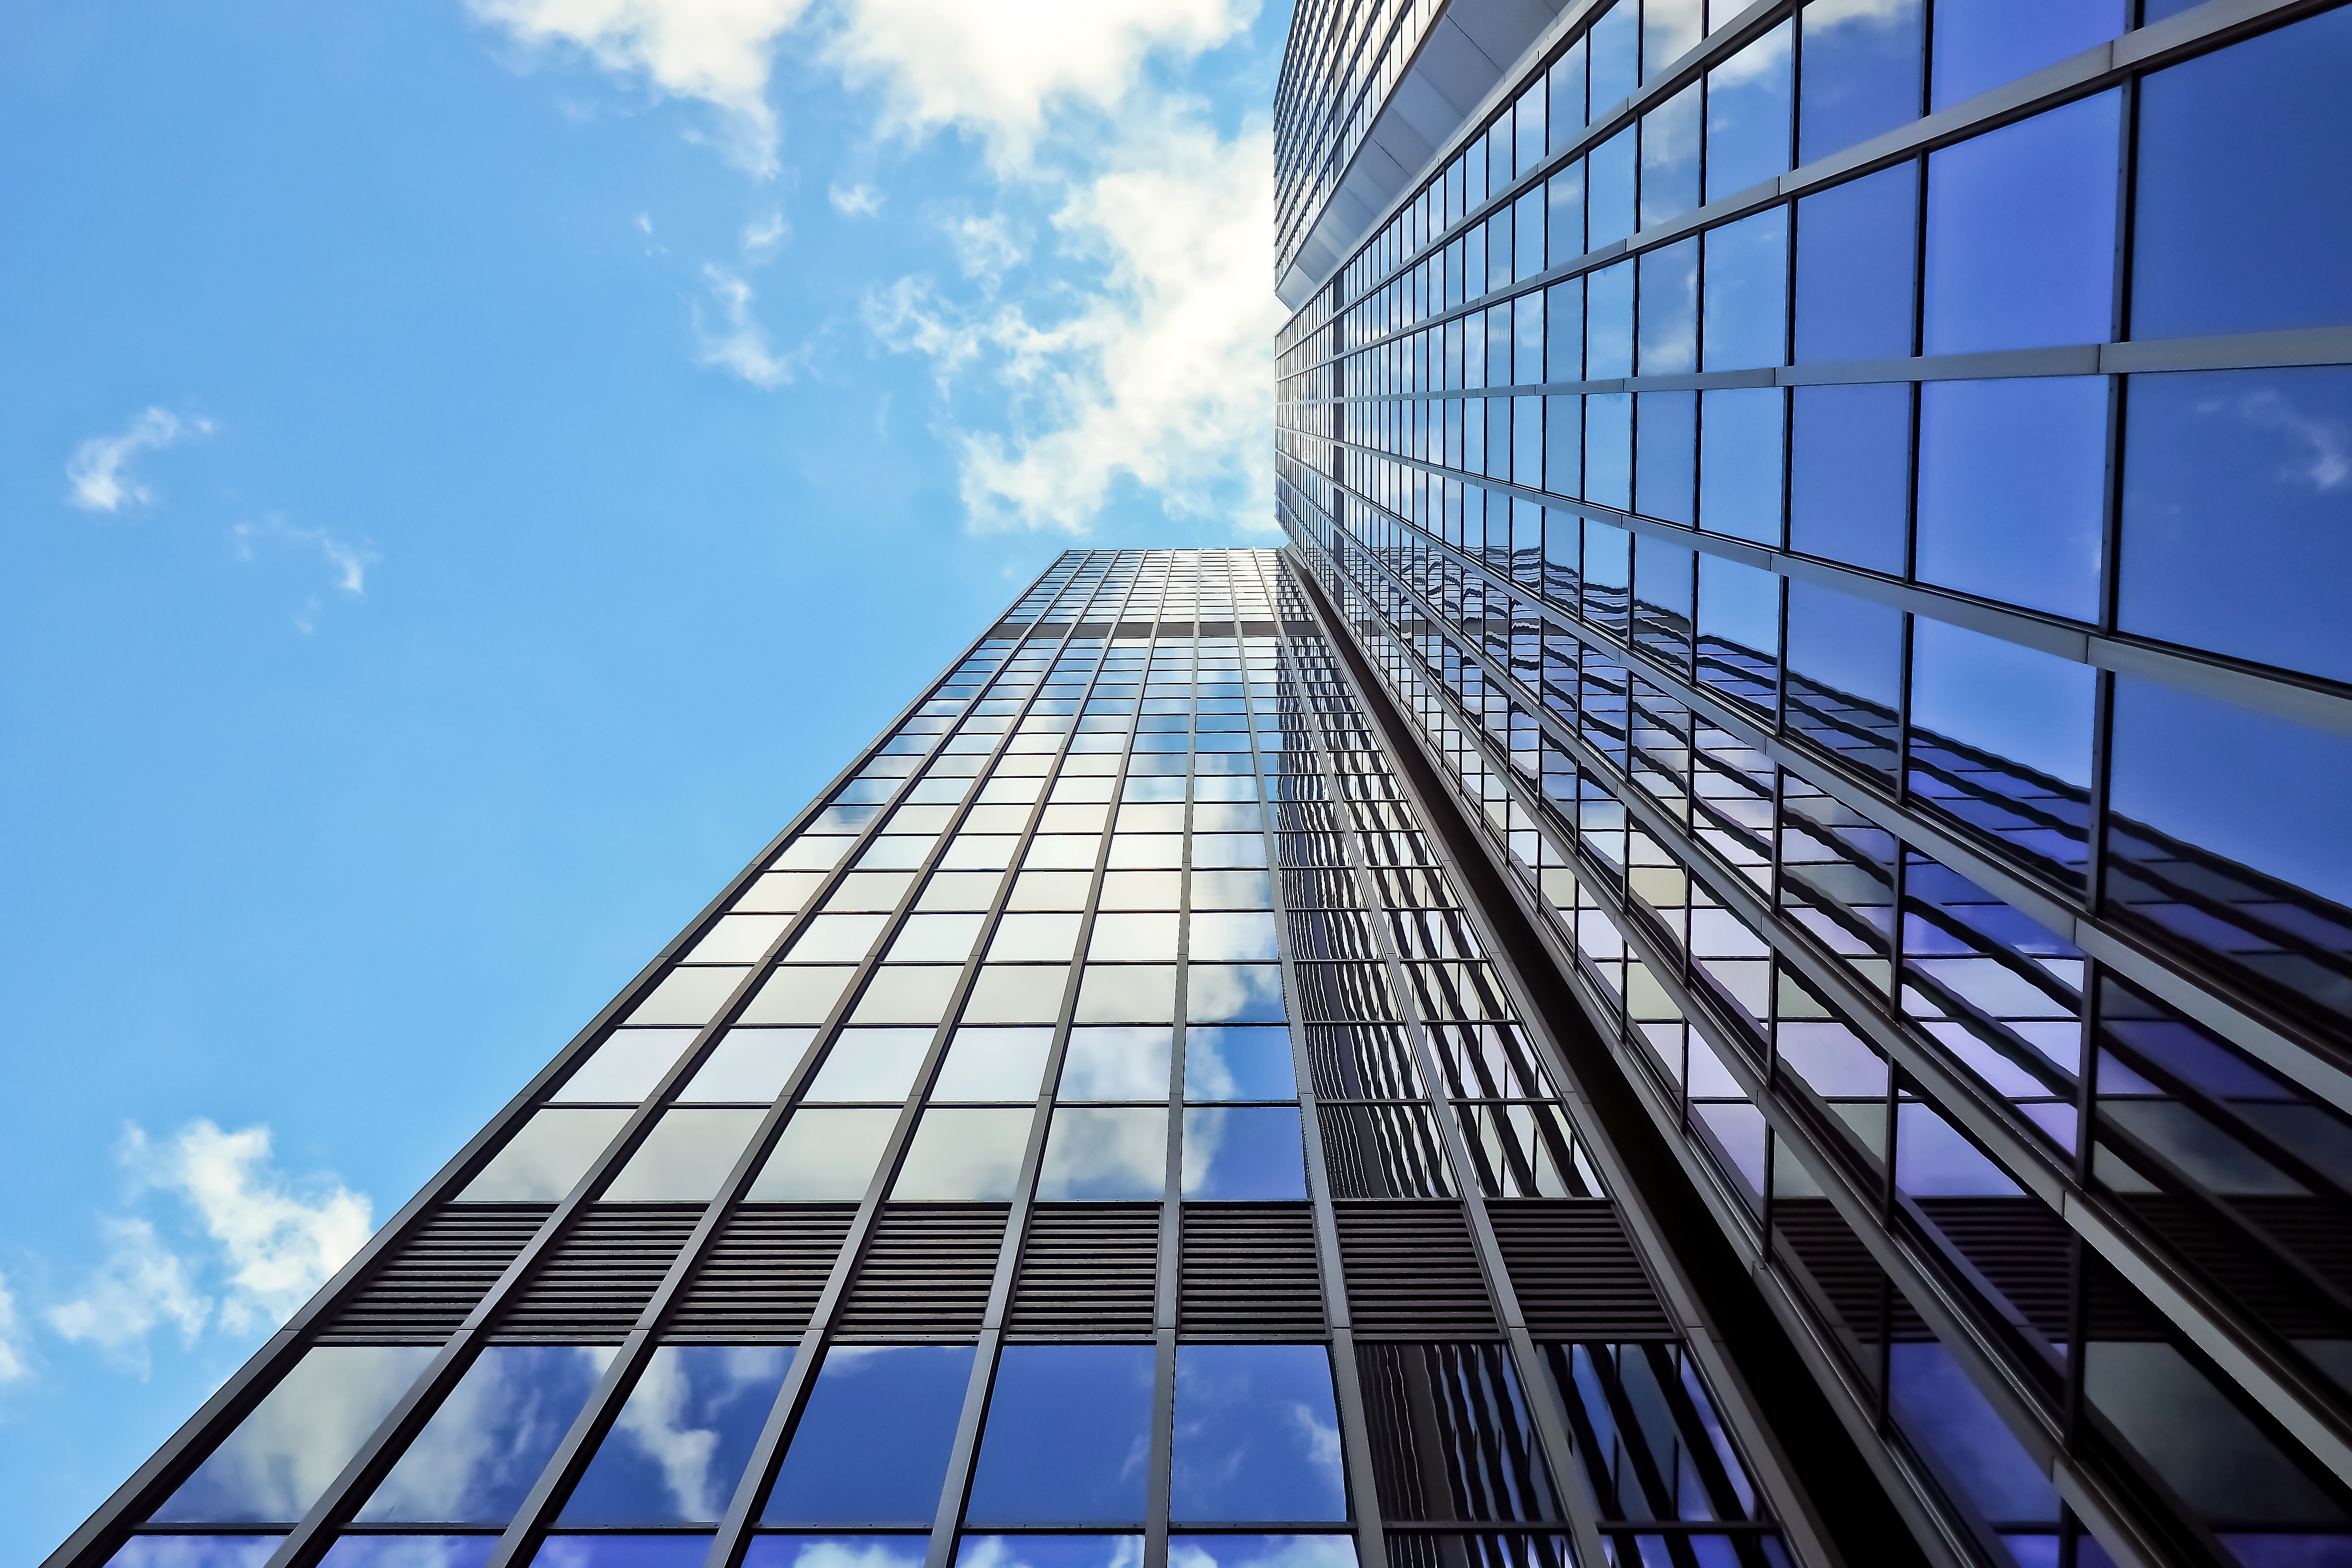 Blue Highrise Glass Skyscraper Intersection Low Angle Shot: Free Stock Photo Of Architecture, Building, Glass